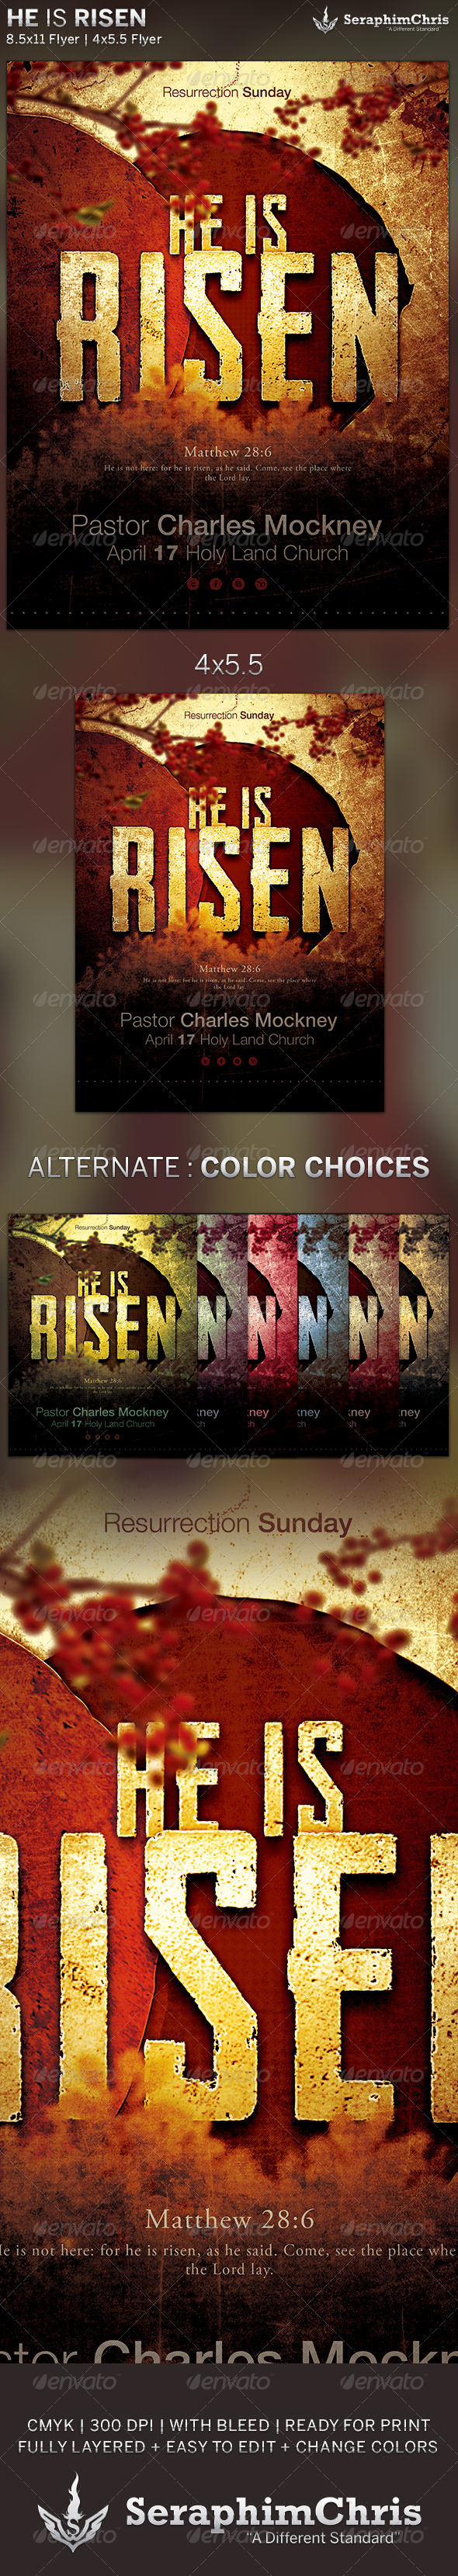 He is Risen: Church Flyer Template - Church Flyers